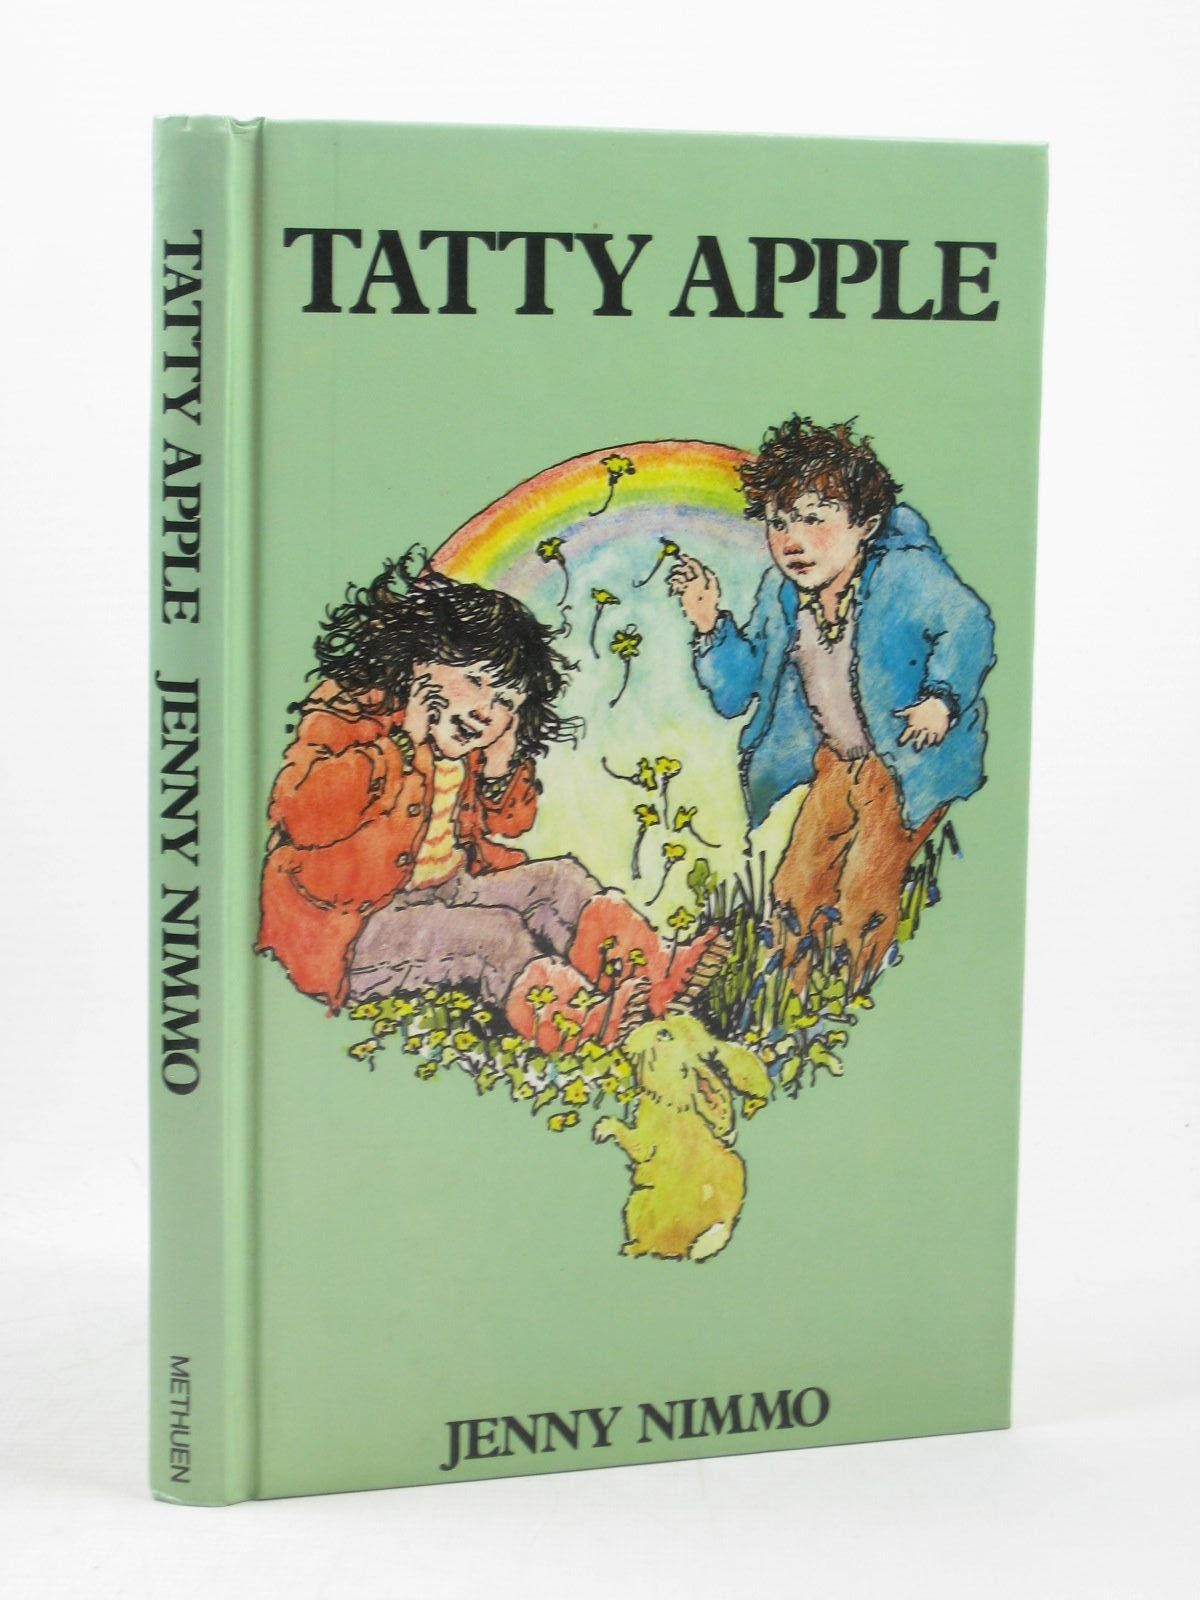 Photo of TATTY APPLE written by Nimmo, Jenny illustrated by Lamont, Priscilla published by Methuen Children's Books Ltd. (STOCK CODE: 1312493)  for sale by Stella & Rose's Books